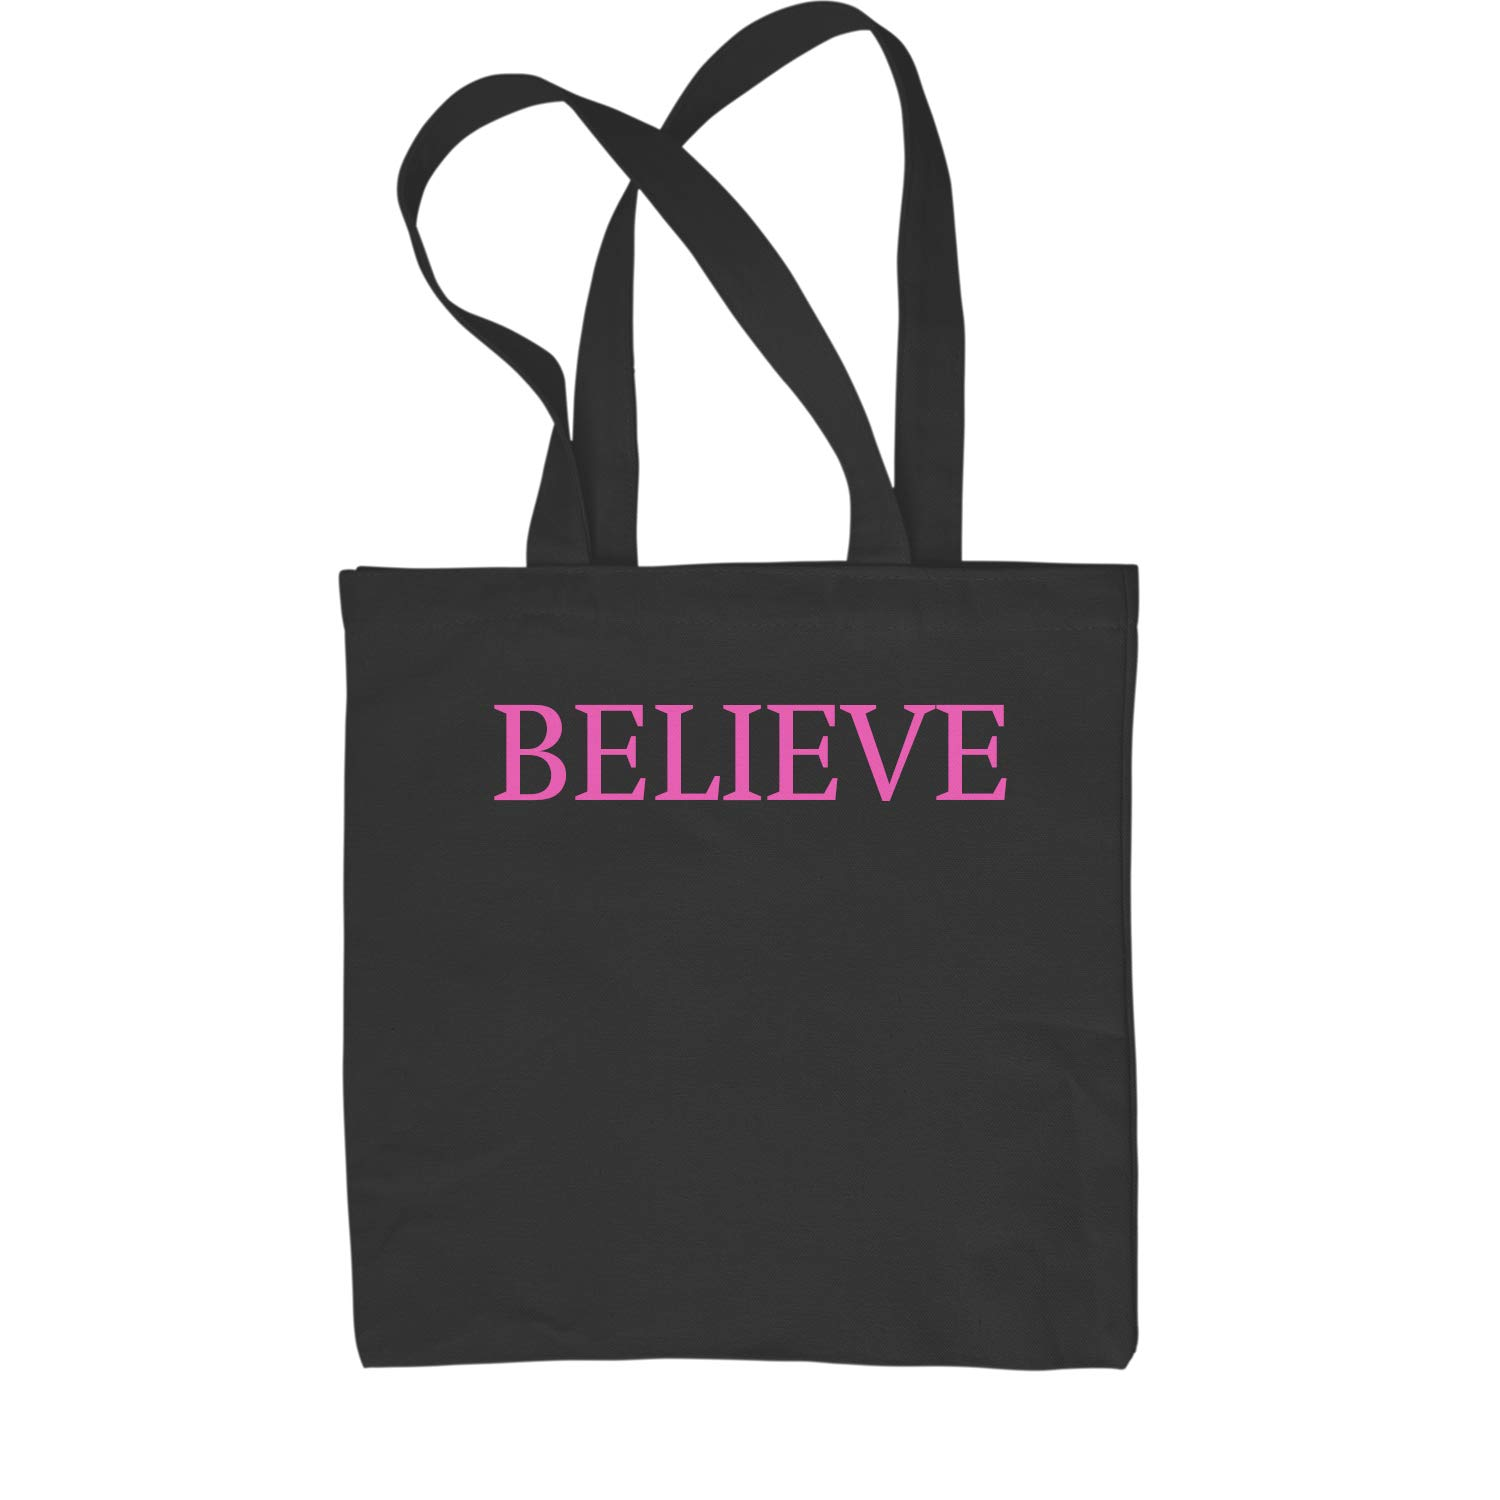 Expression Tees Believe Shopping Tote Bag